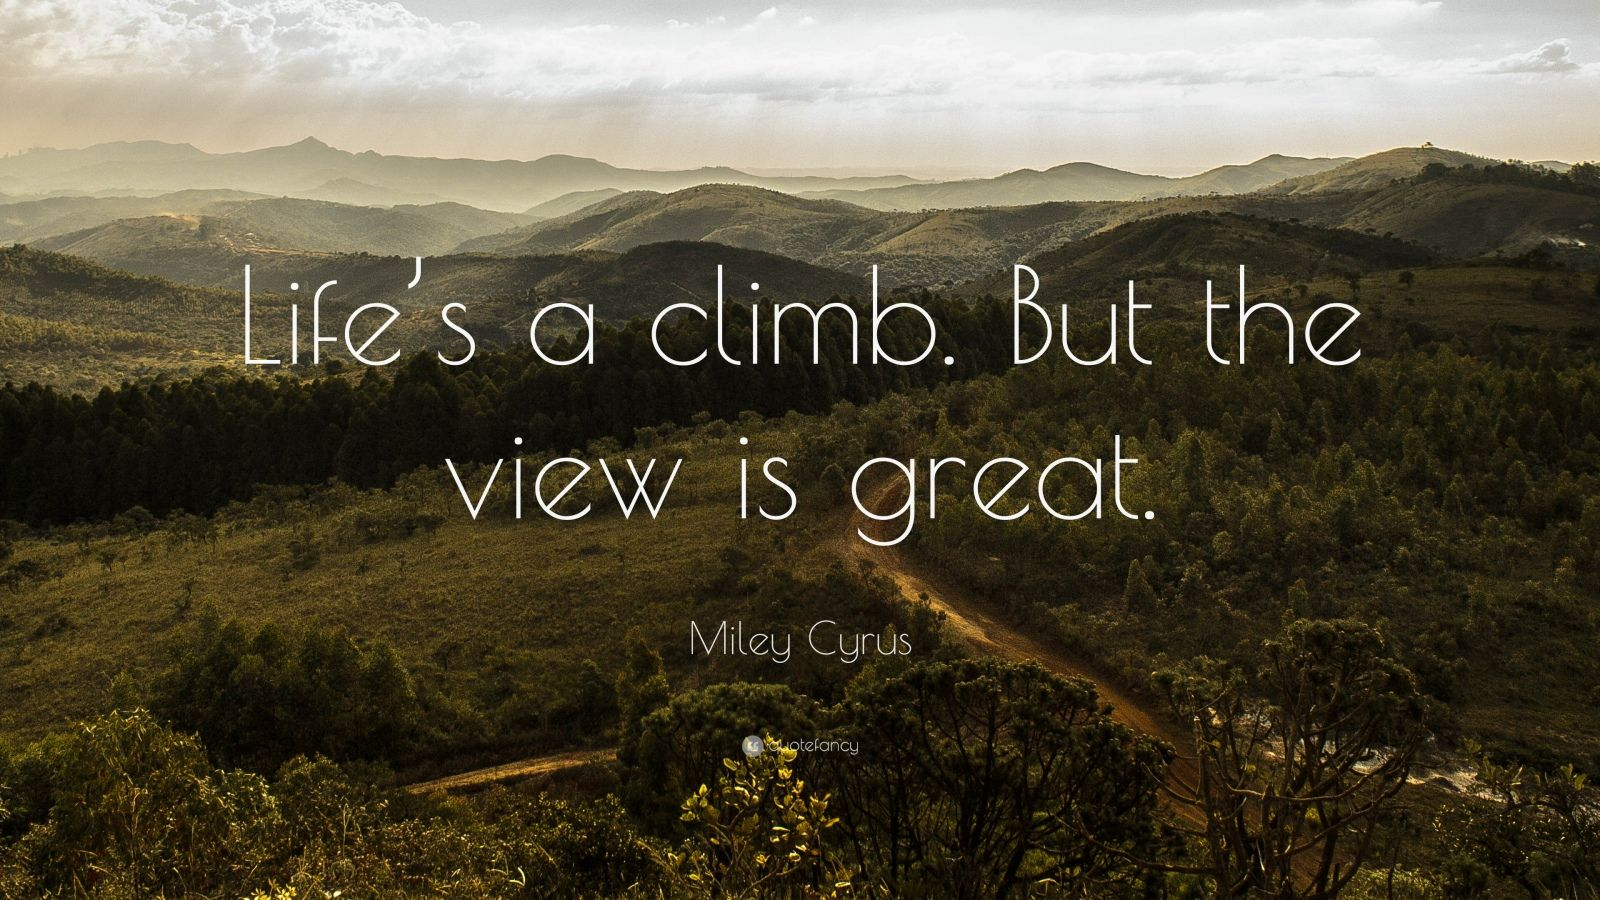 Zen Quote Wallpapers Miley Cyrus Quote Life S A Climb But The View Is Great